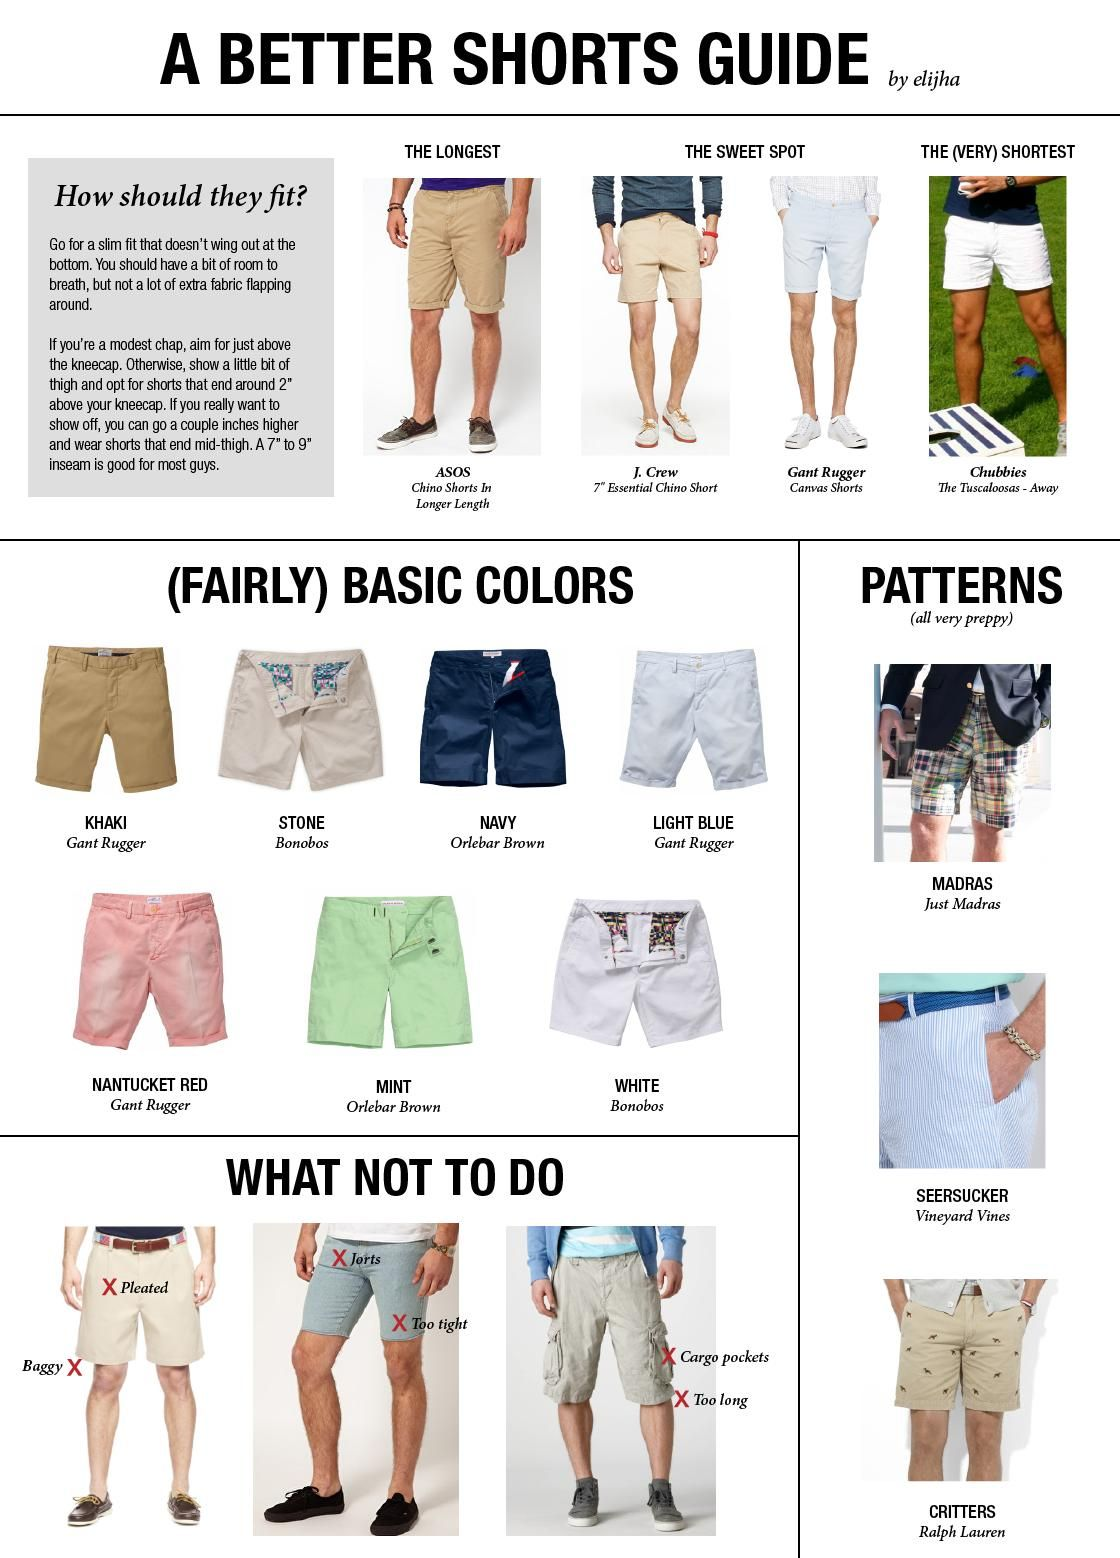 A Better Shorts Guide | Men's Fashion Shorts #style